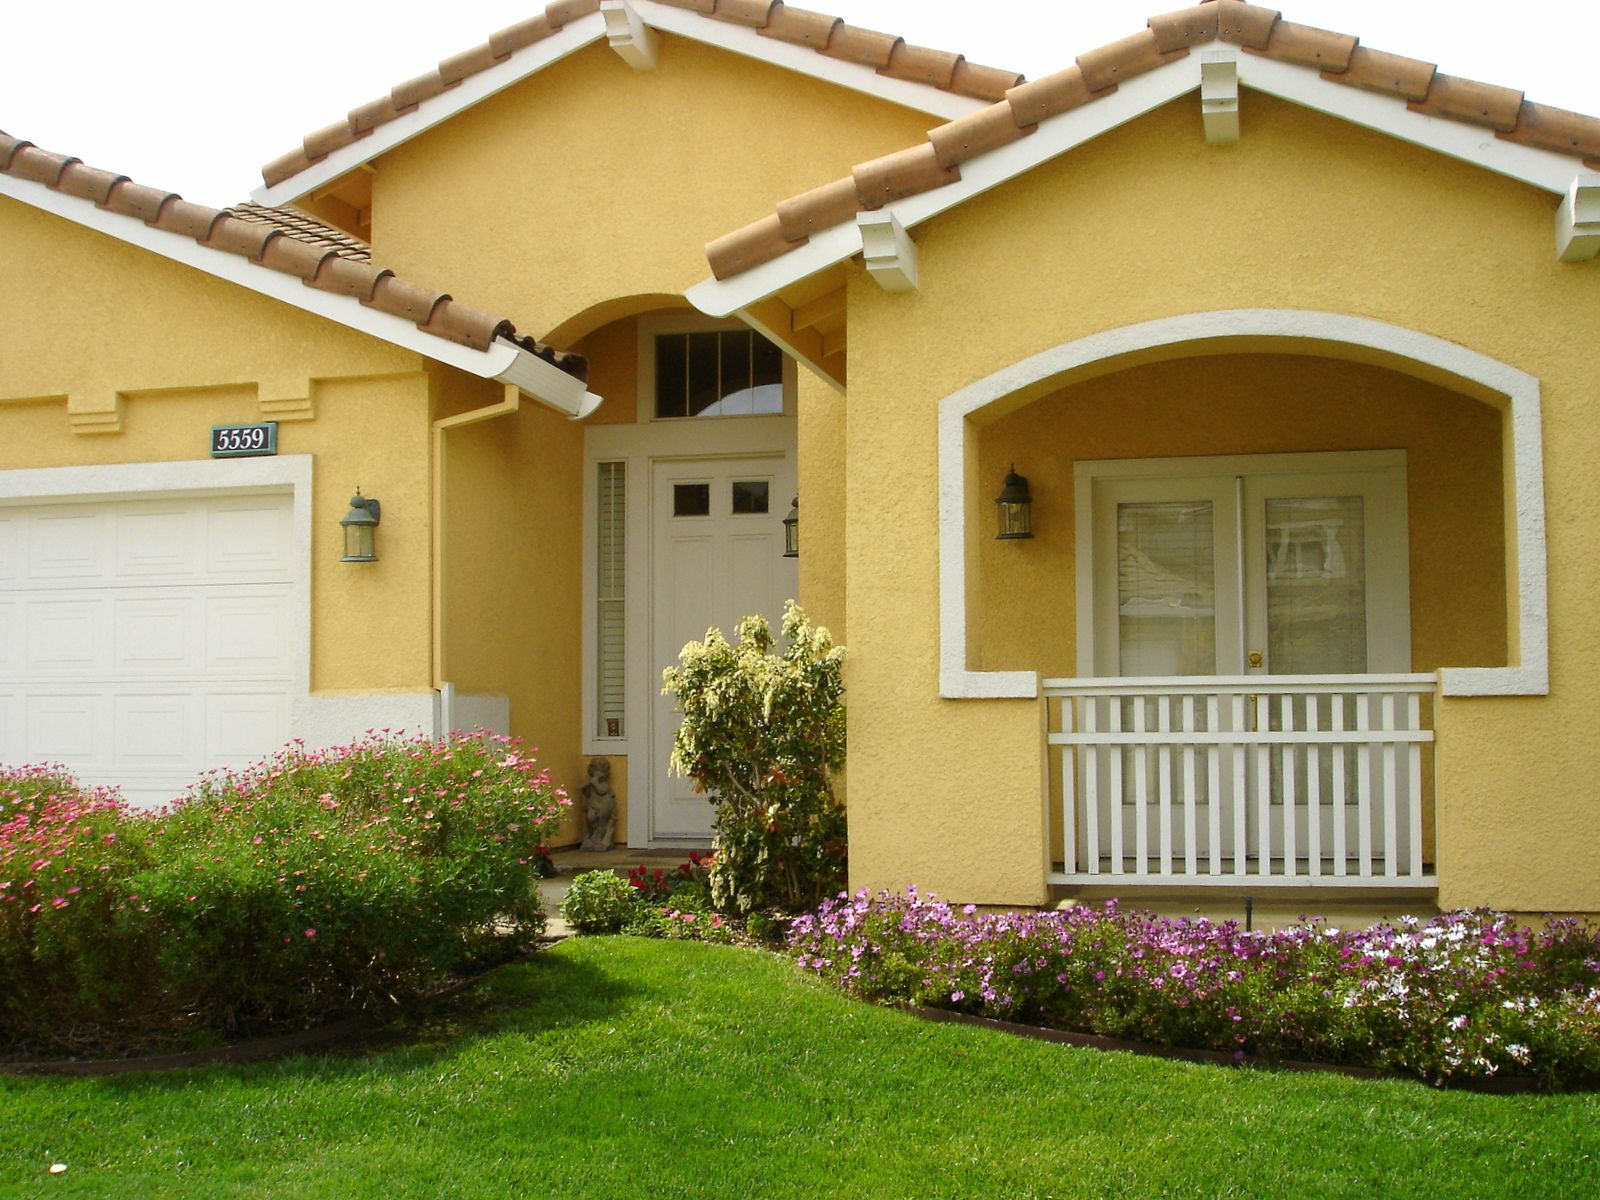 Garage exterior paint ideas - Exterior Cool Yellow Exterior Paint Feats With Nice White Garage